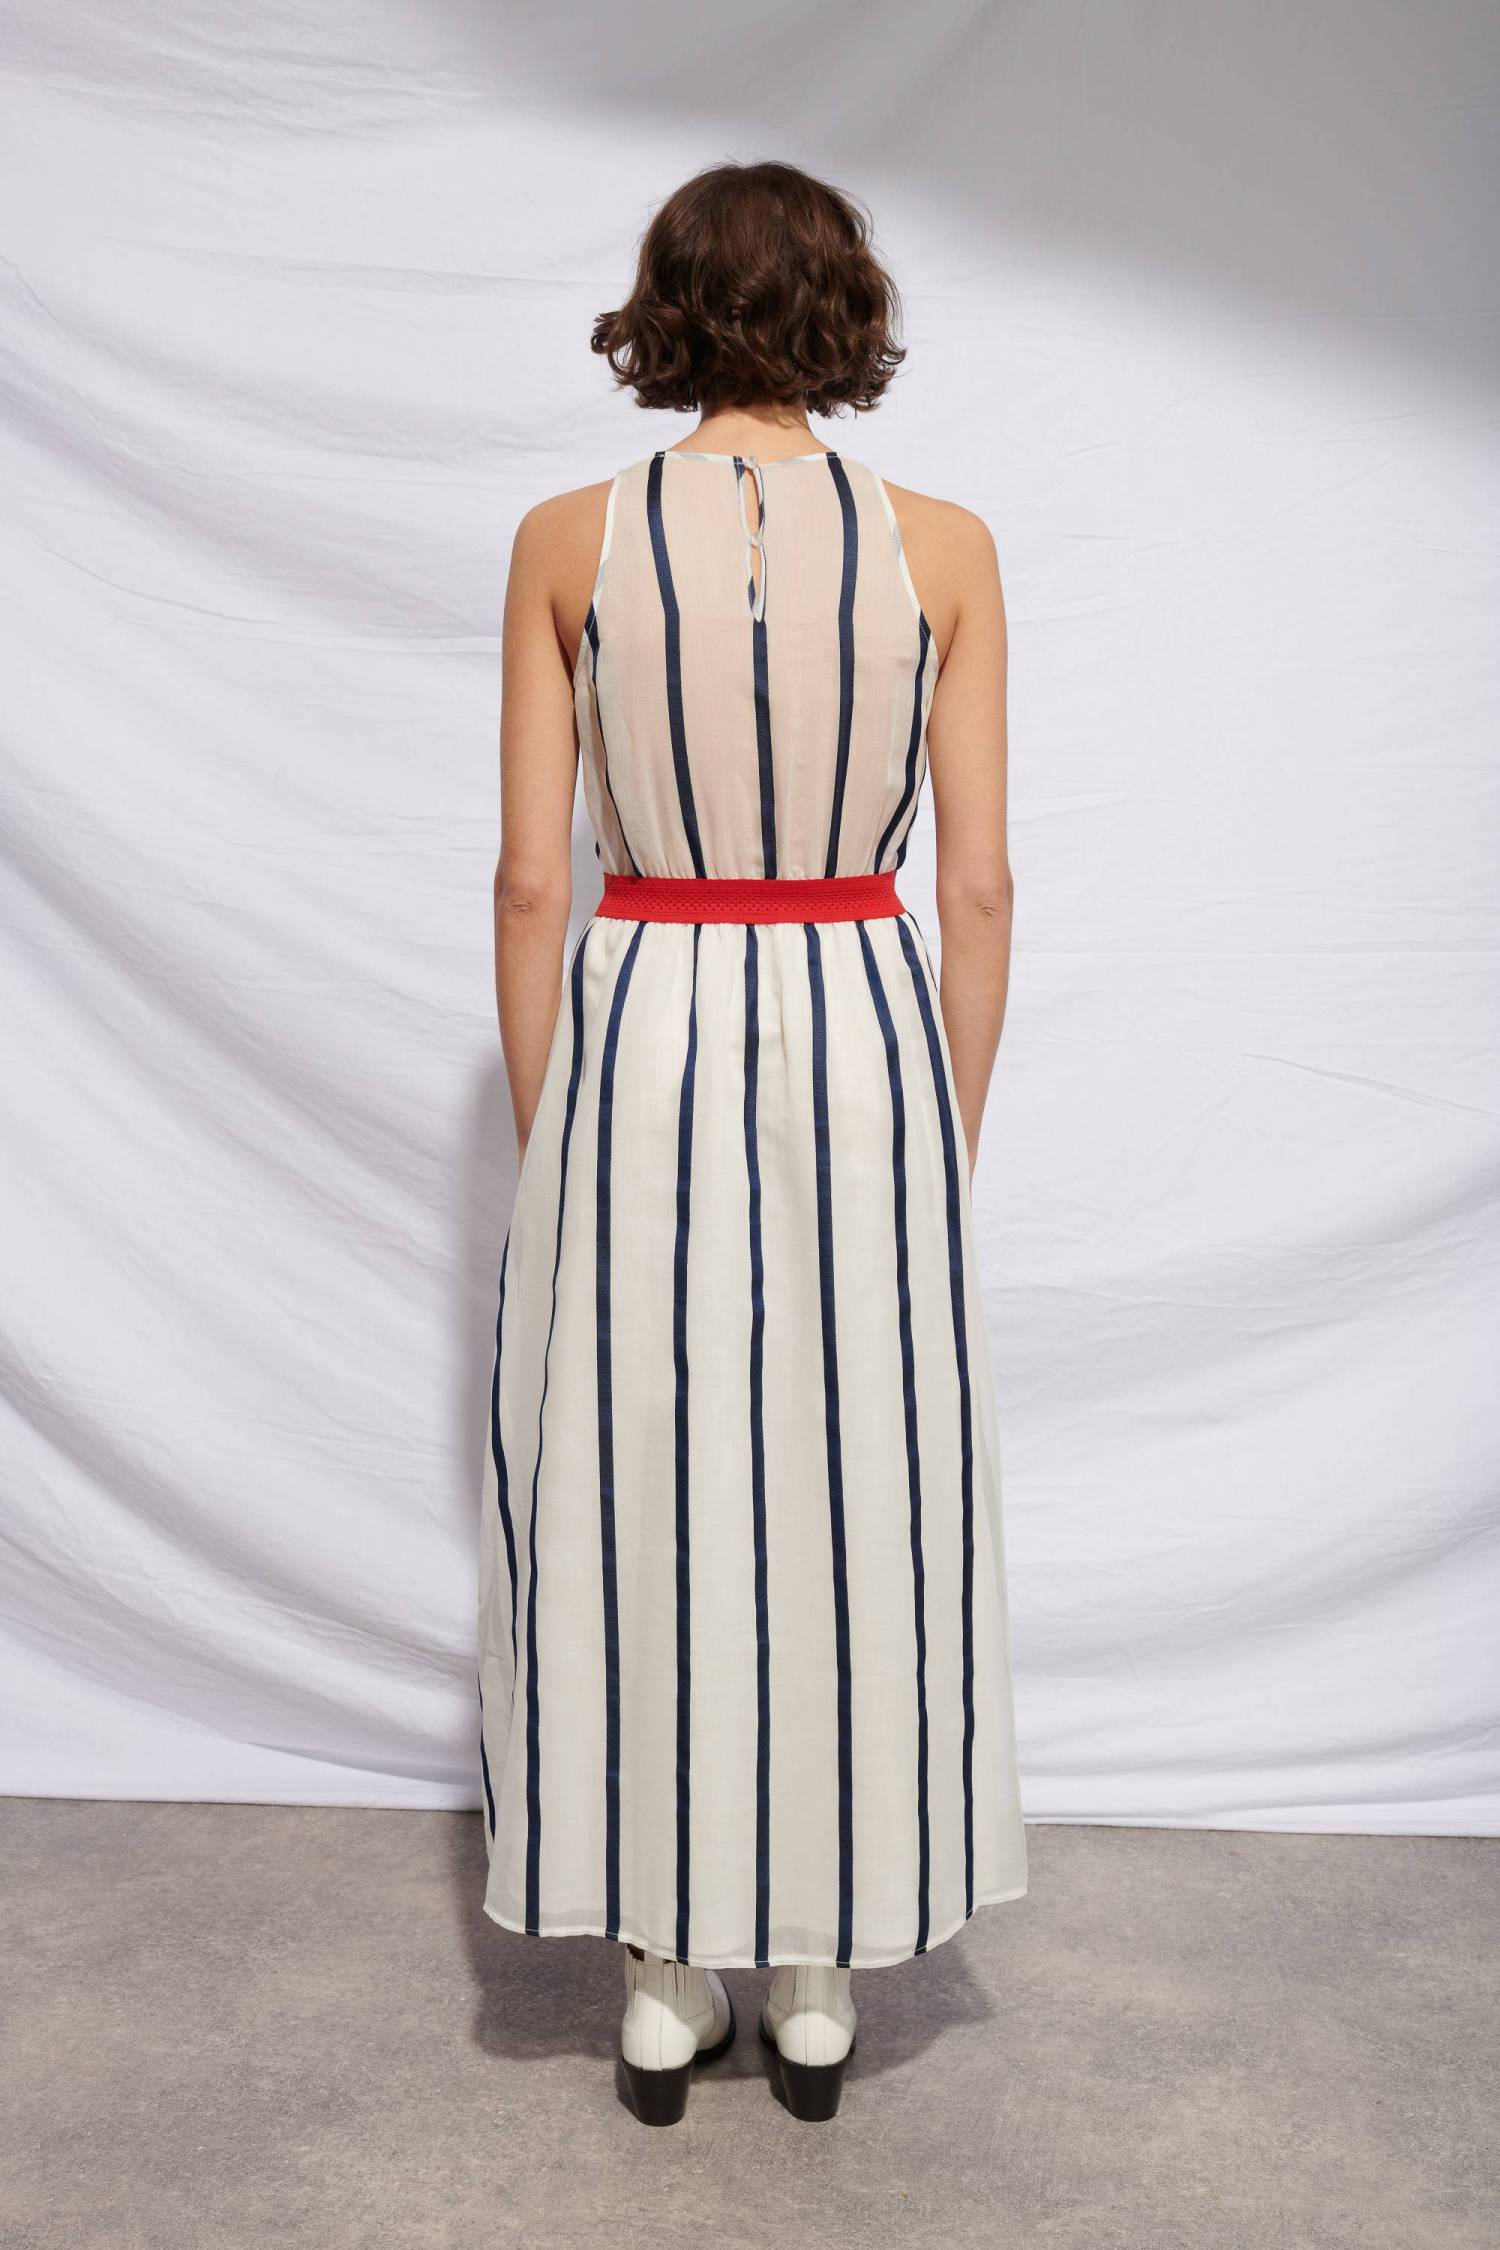 Robe rayée taille contrastante